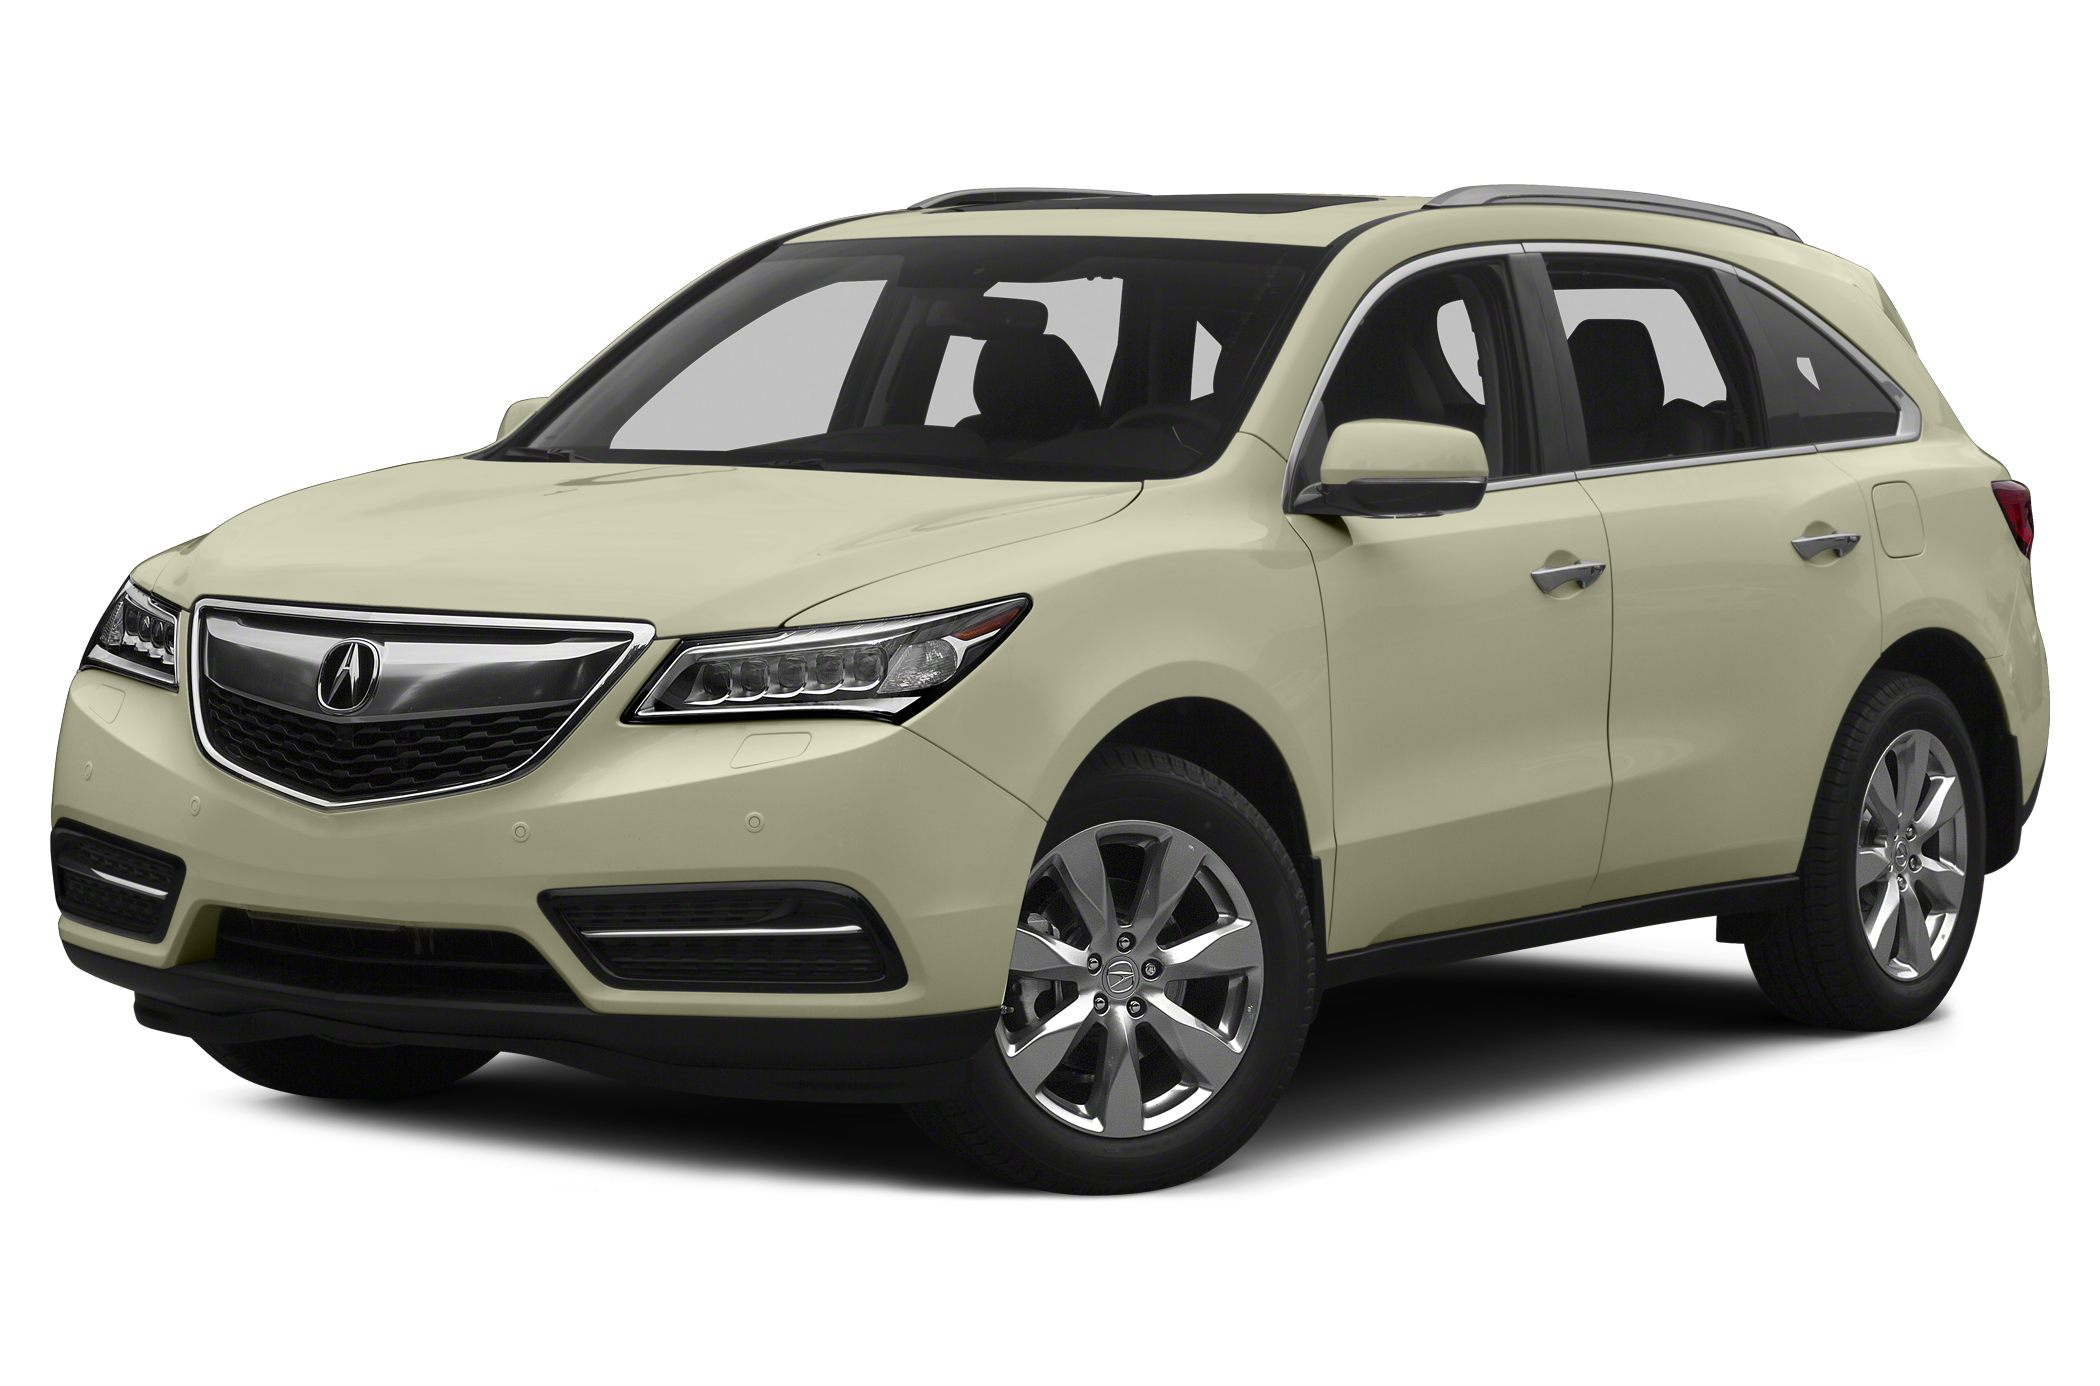 2015 Acura MDX 3.5L Advance Pkg W/Entertainment Pkg SUV for sale in Gainesville for $55,675 with 0 miles.